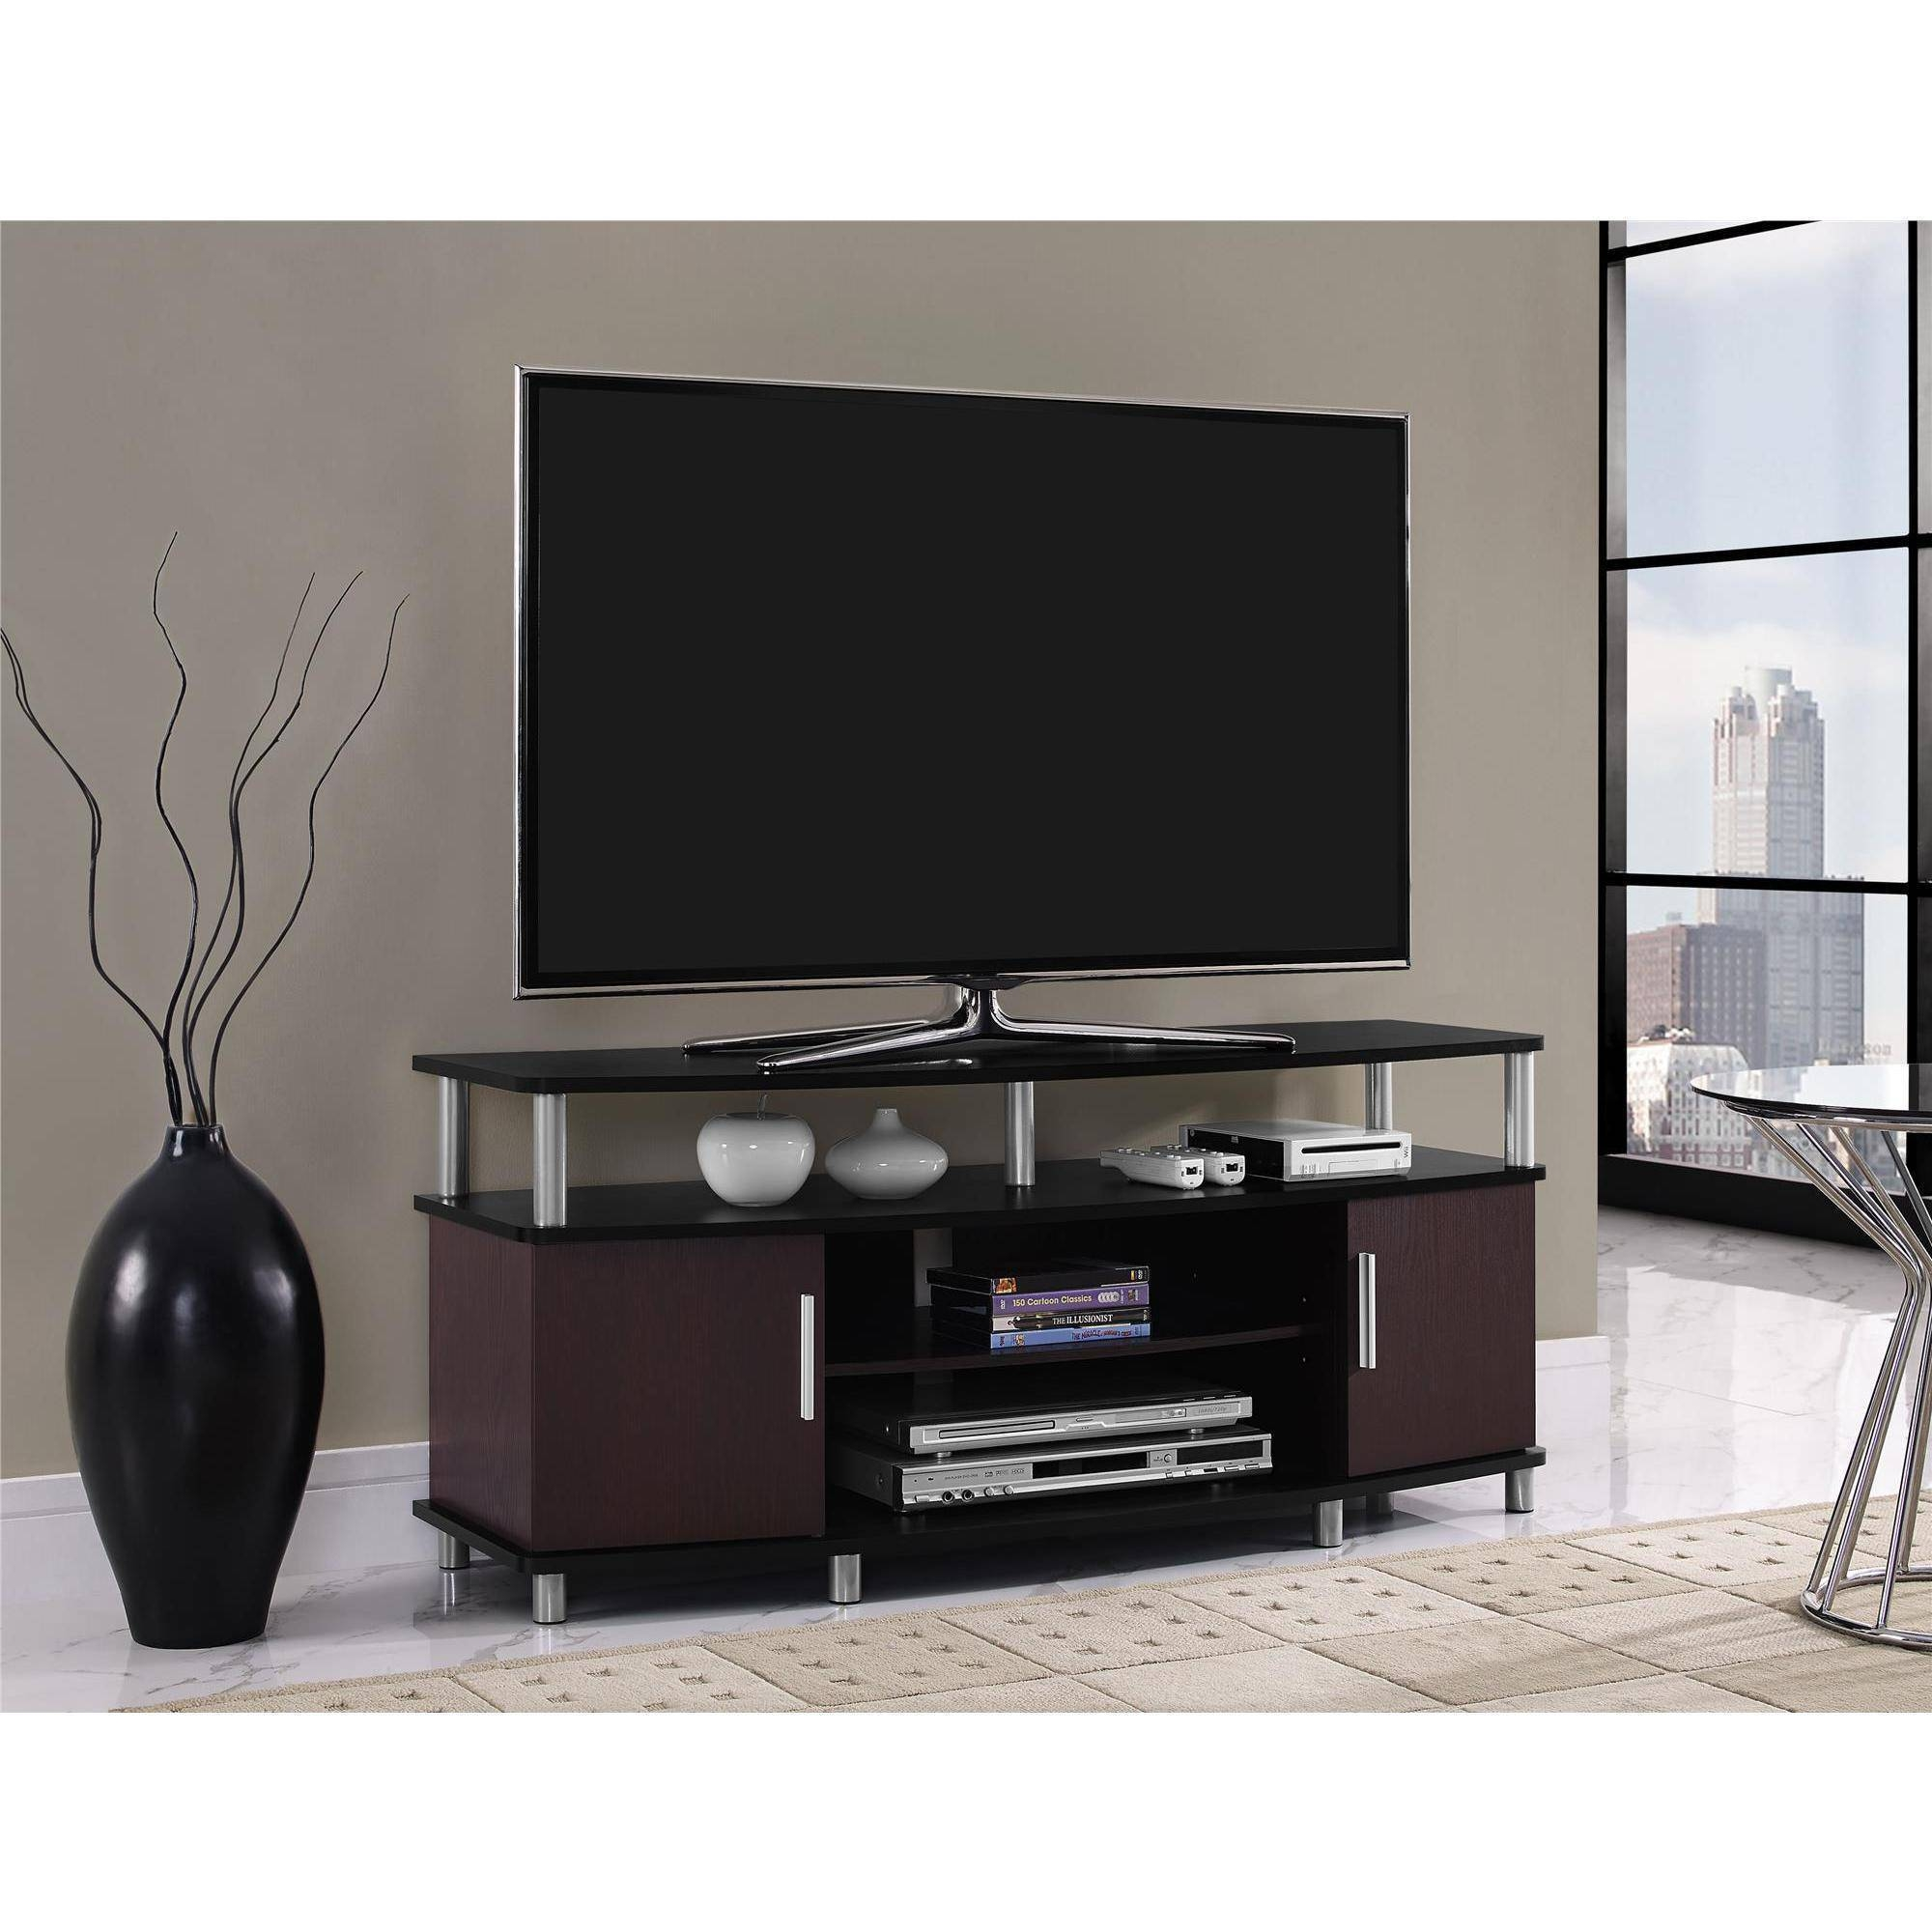 "Cordoba Tv Stand With Mount, For Tvs Up To 52"" - Walmart inside Cordoba Tv Stands (Image 1 of 15)"